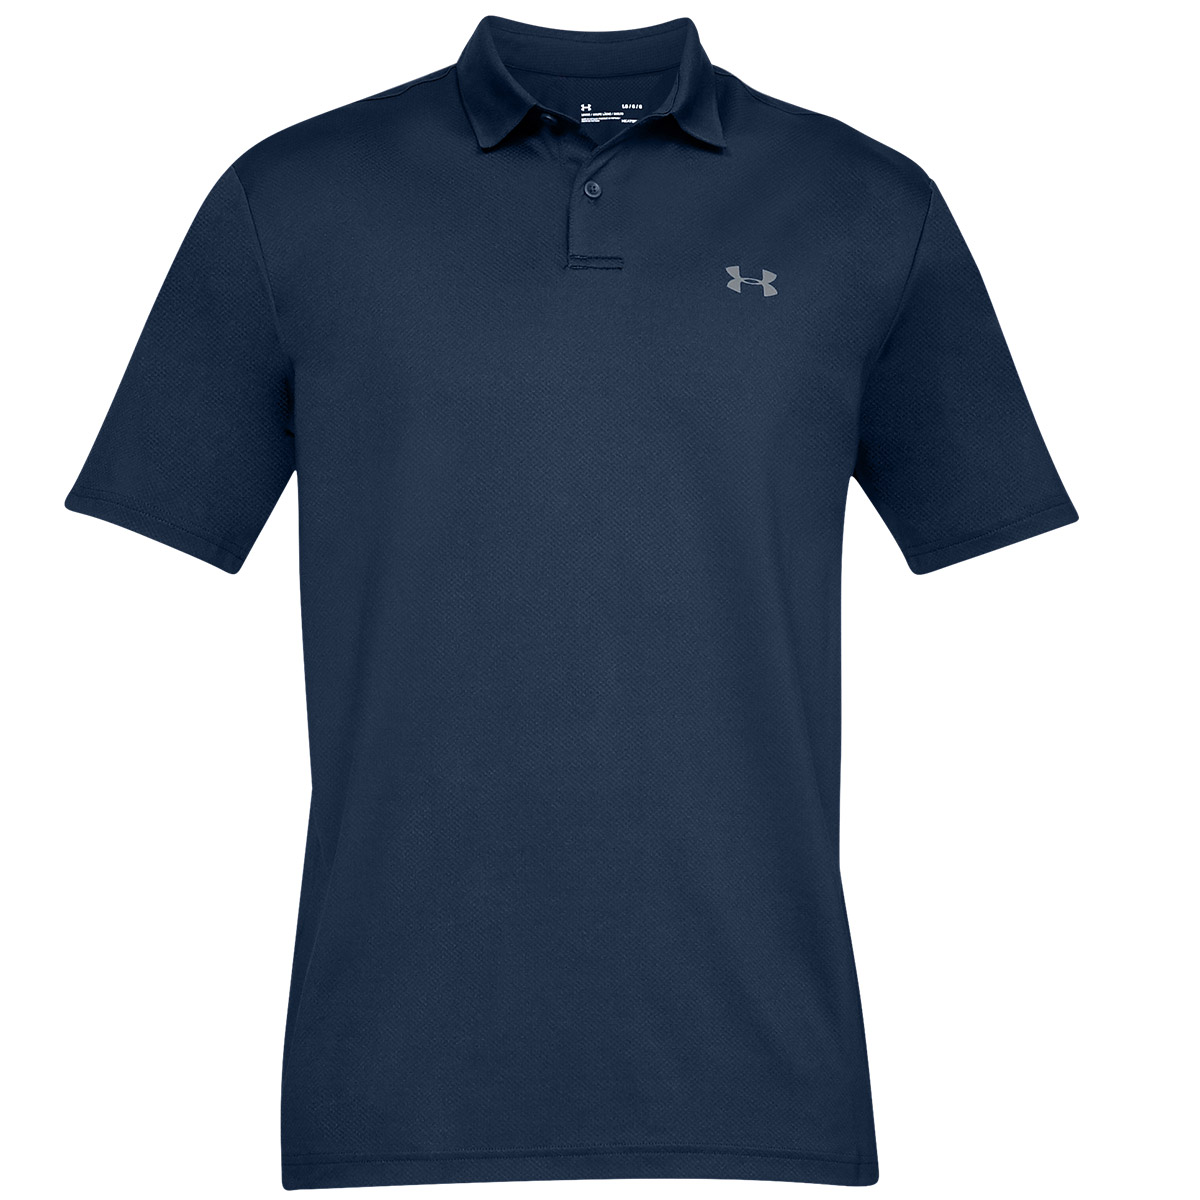 8e6ab738 Under Armour Performance 2.0 Polo Shirt from american golf